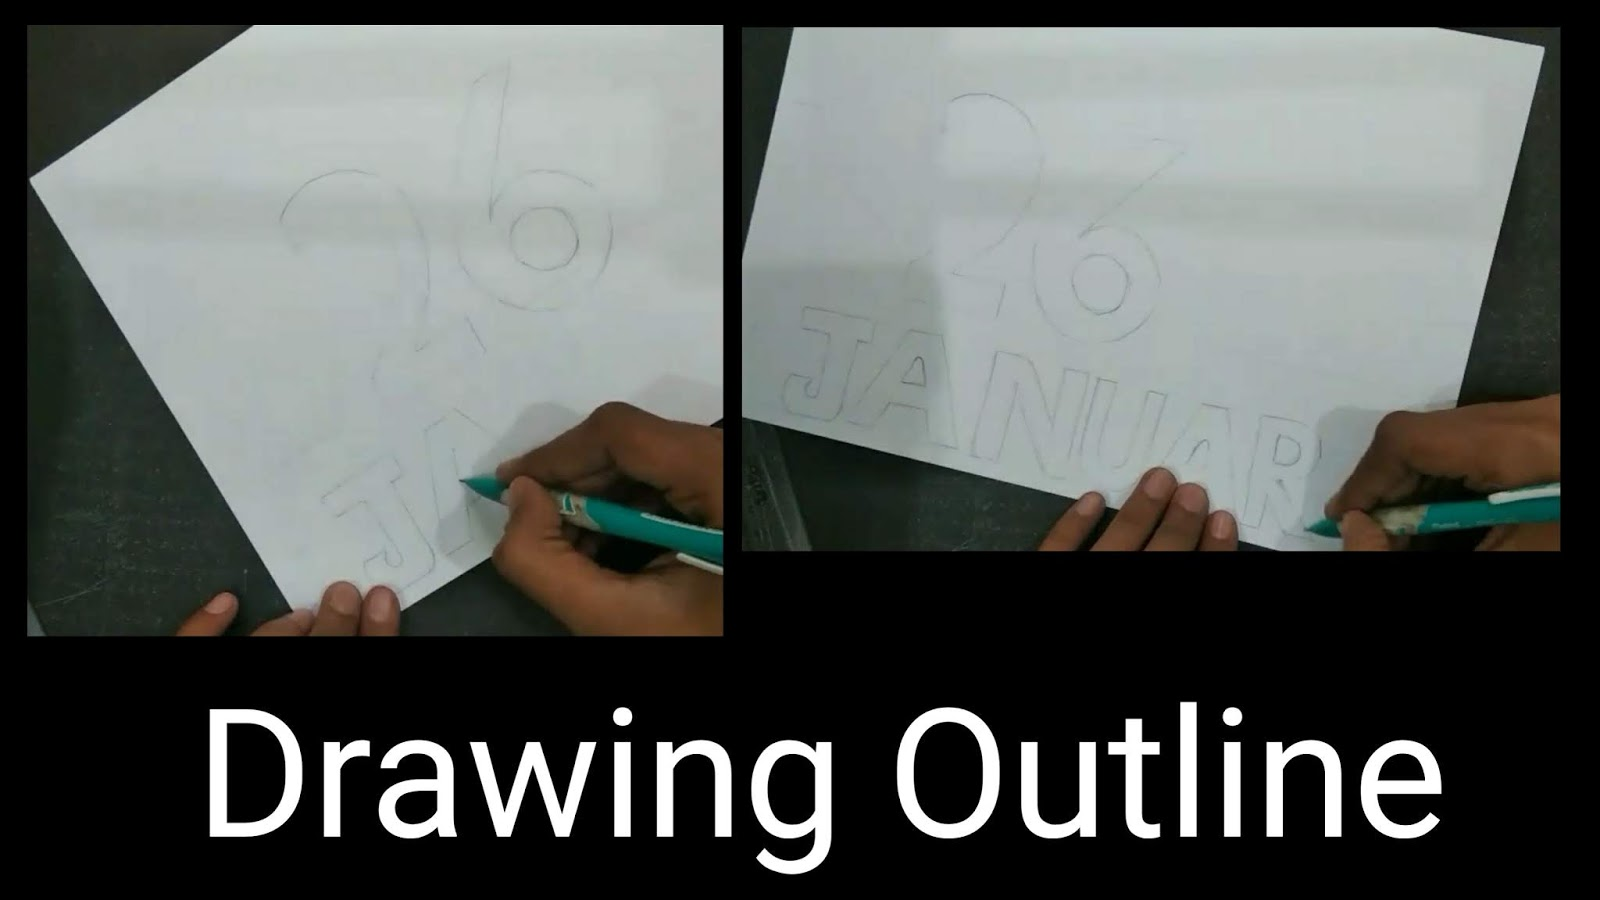 Artofrohitcom Republic Day Poster Drawing Tutorial With Oil